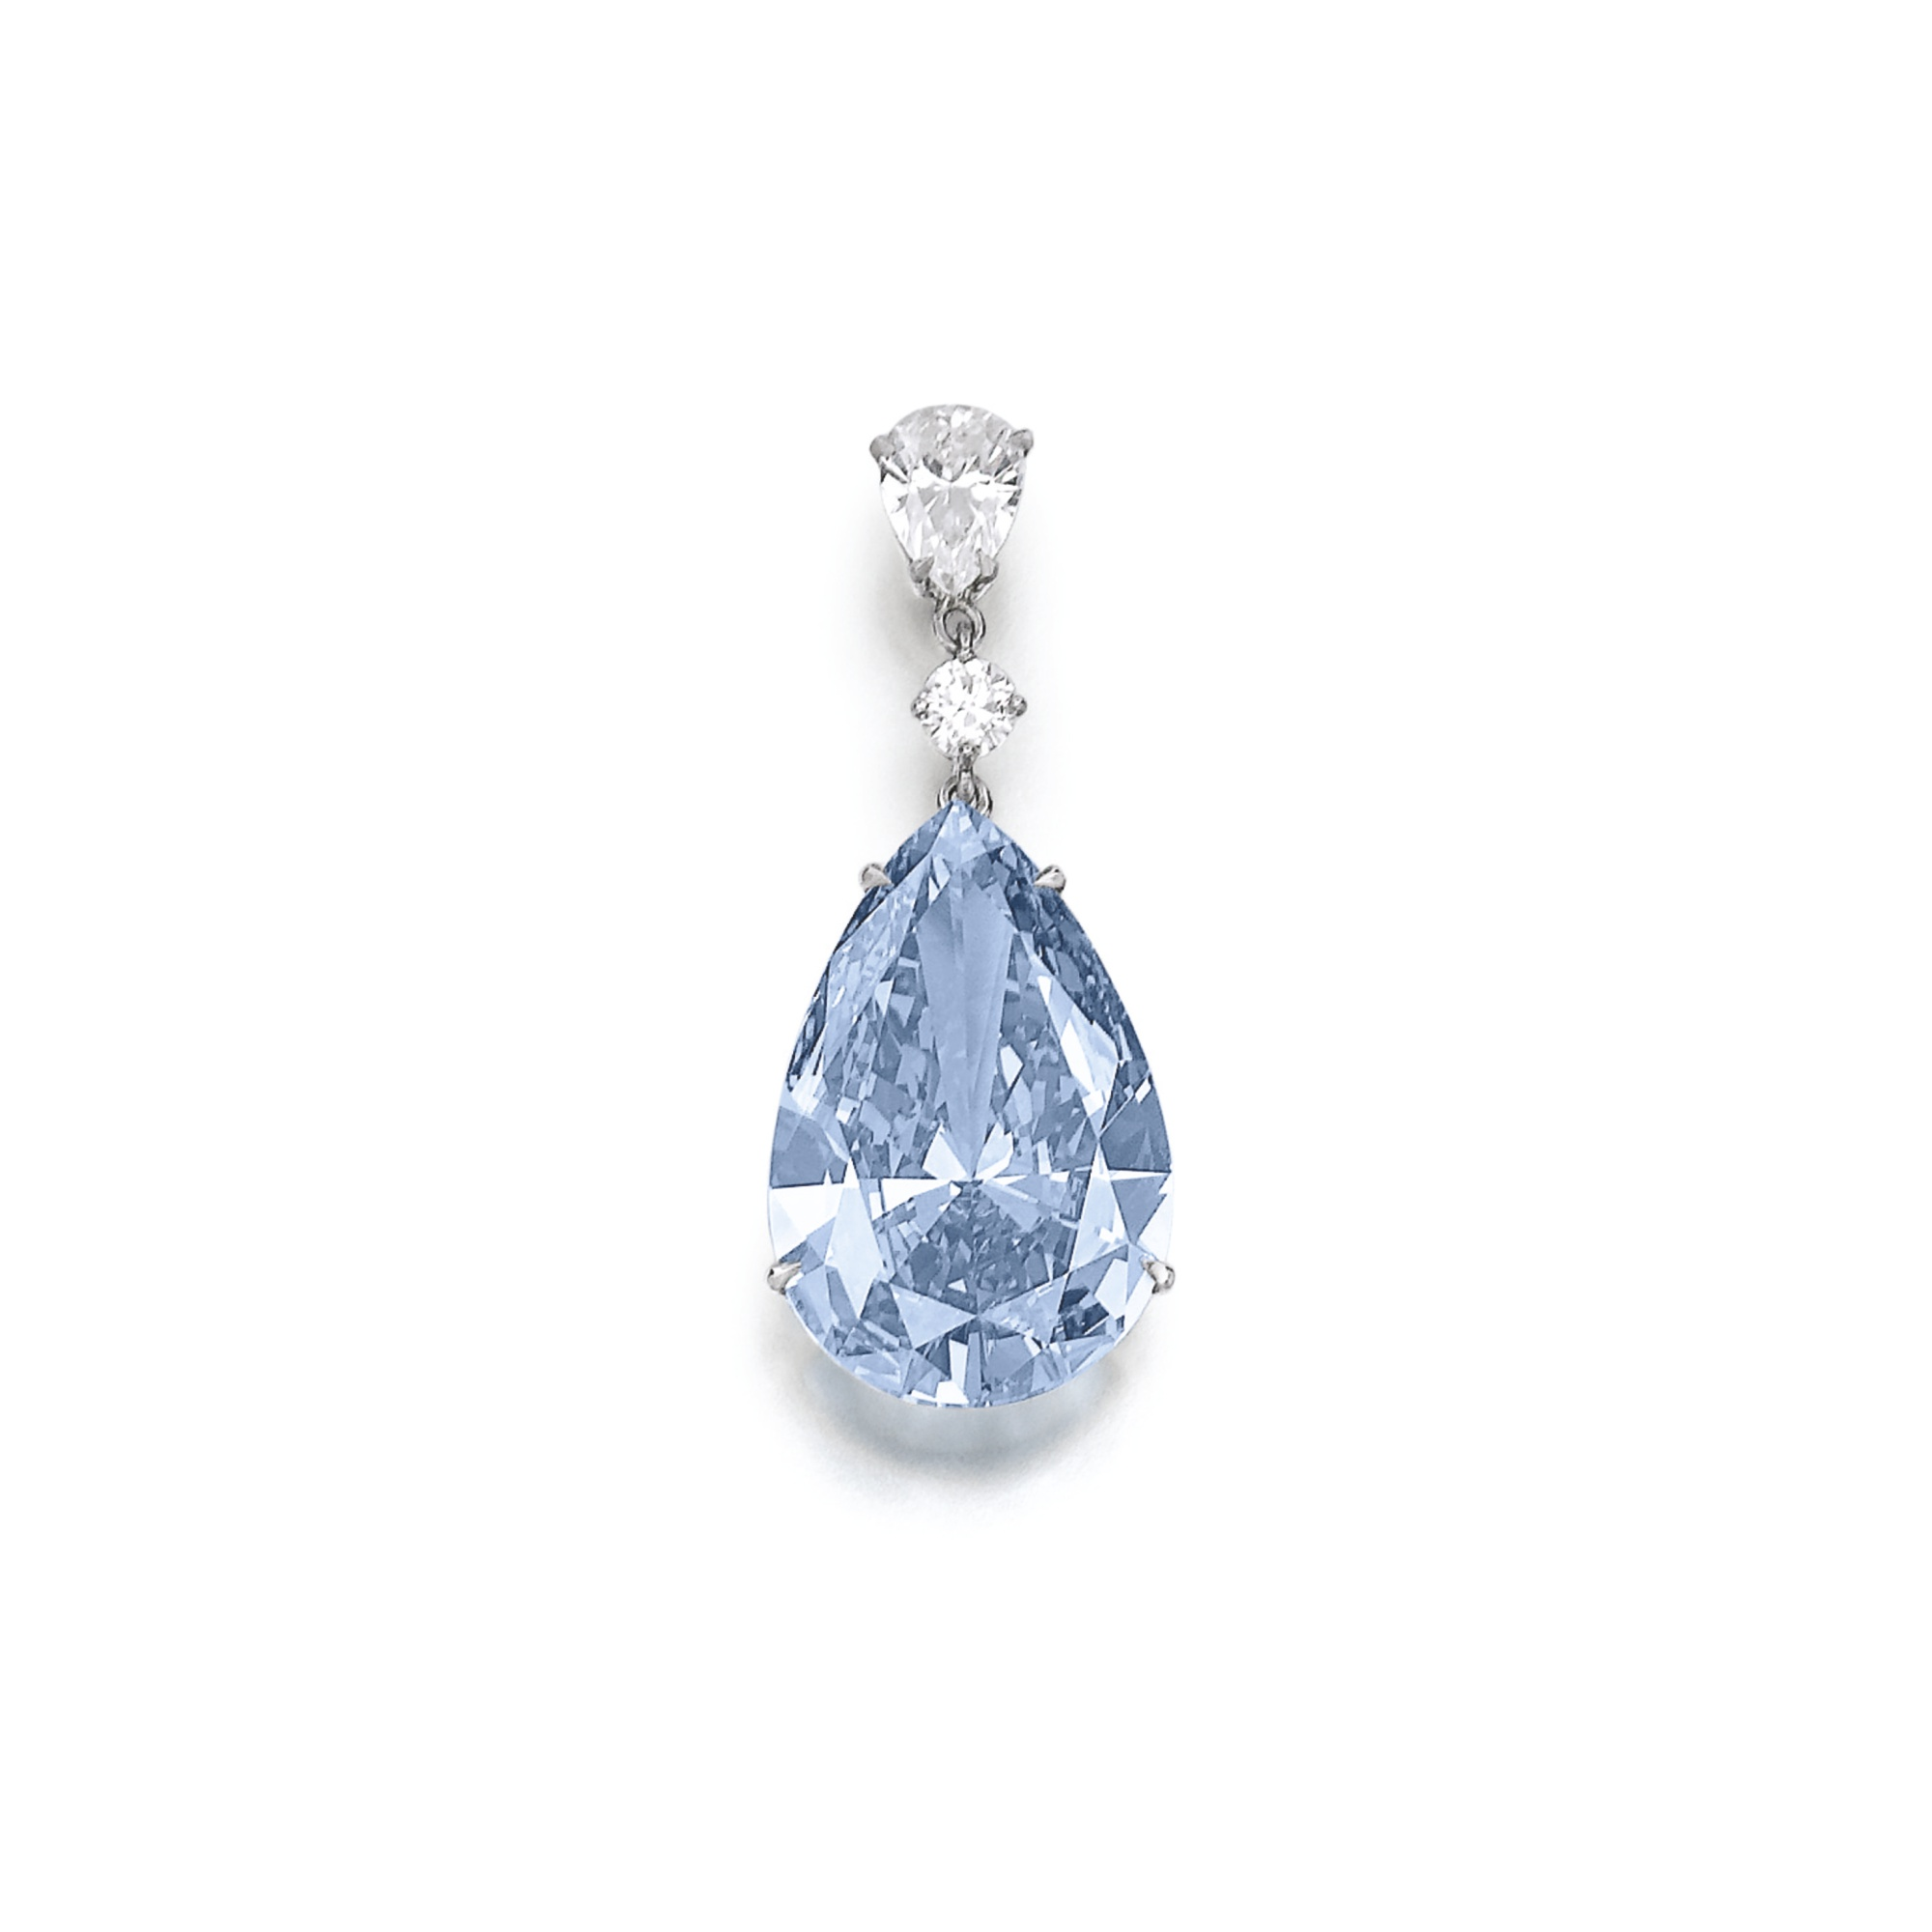 Superb and extremely rare fancy vivid blue diamond.  The pear-shaped fancy vivid blue diamond of truly and outstanding color and purity weighing 14.54 carats, mounted as an earring with a pear-shaped and a brilliant-cut diamond, post fitting. Accompanied by GIA certification.